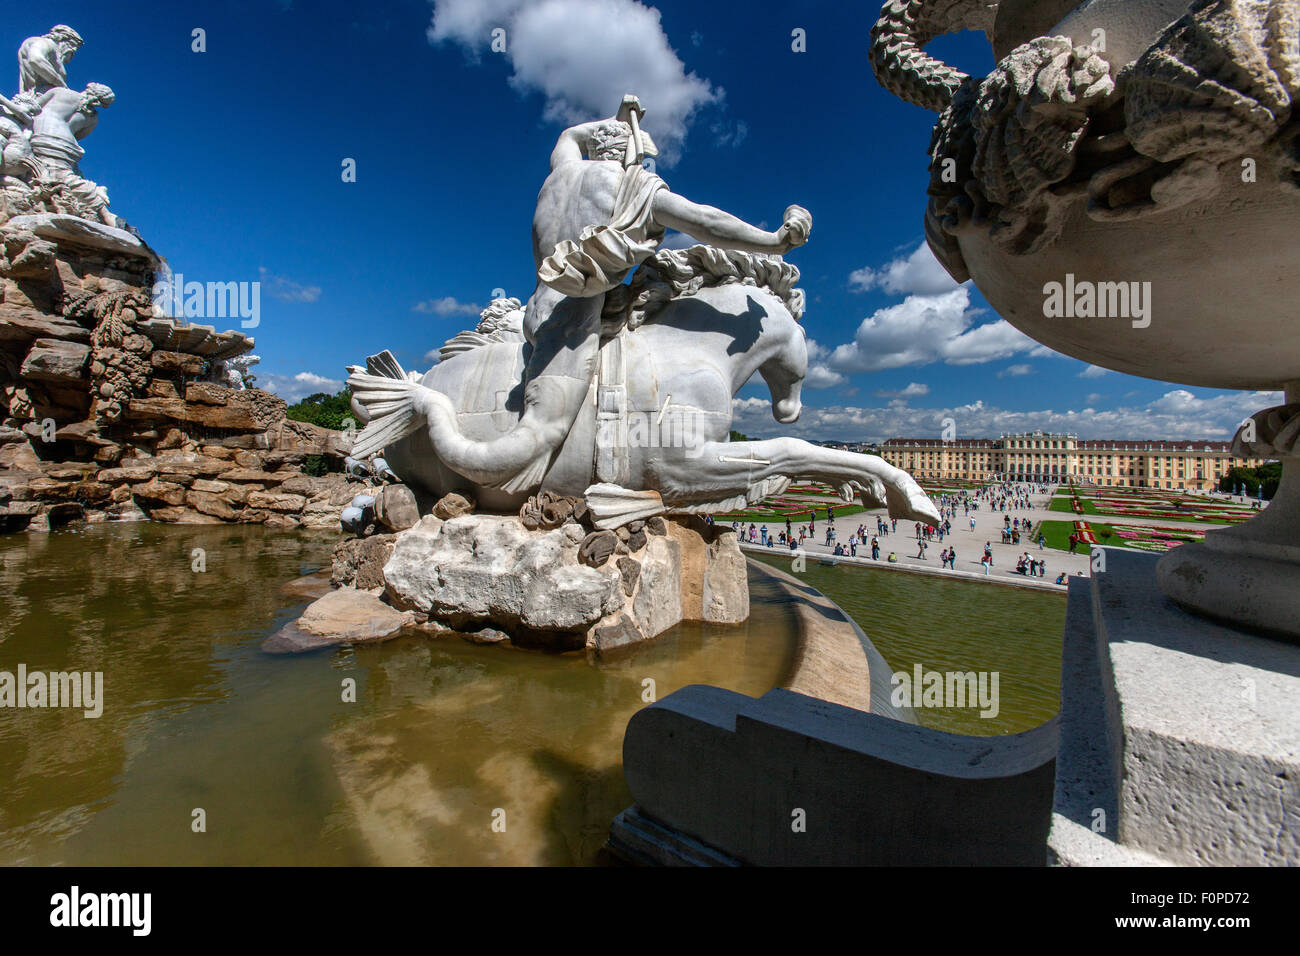 Schoenbrunn Palace and Gardens with Neptun Fountain in foreground, Vienna, Austria - Stock Image